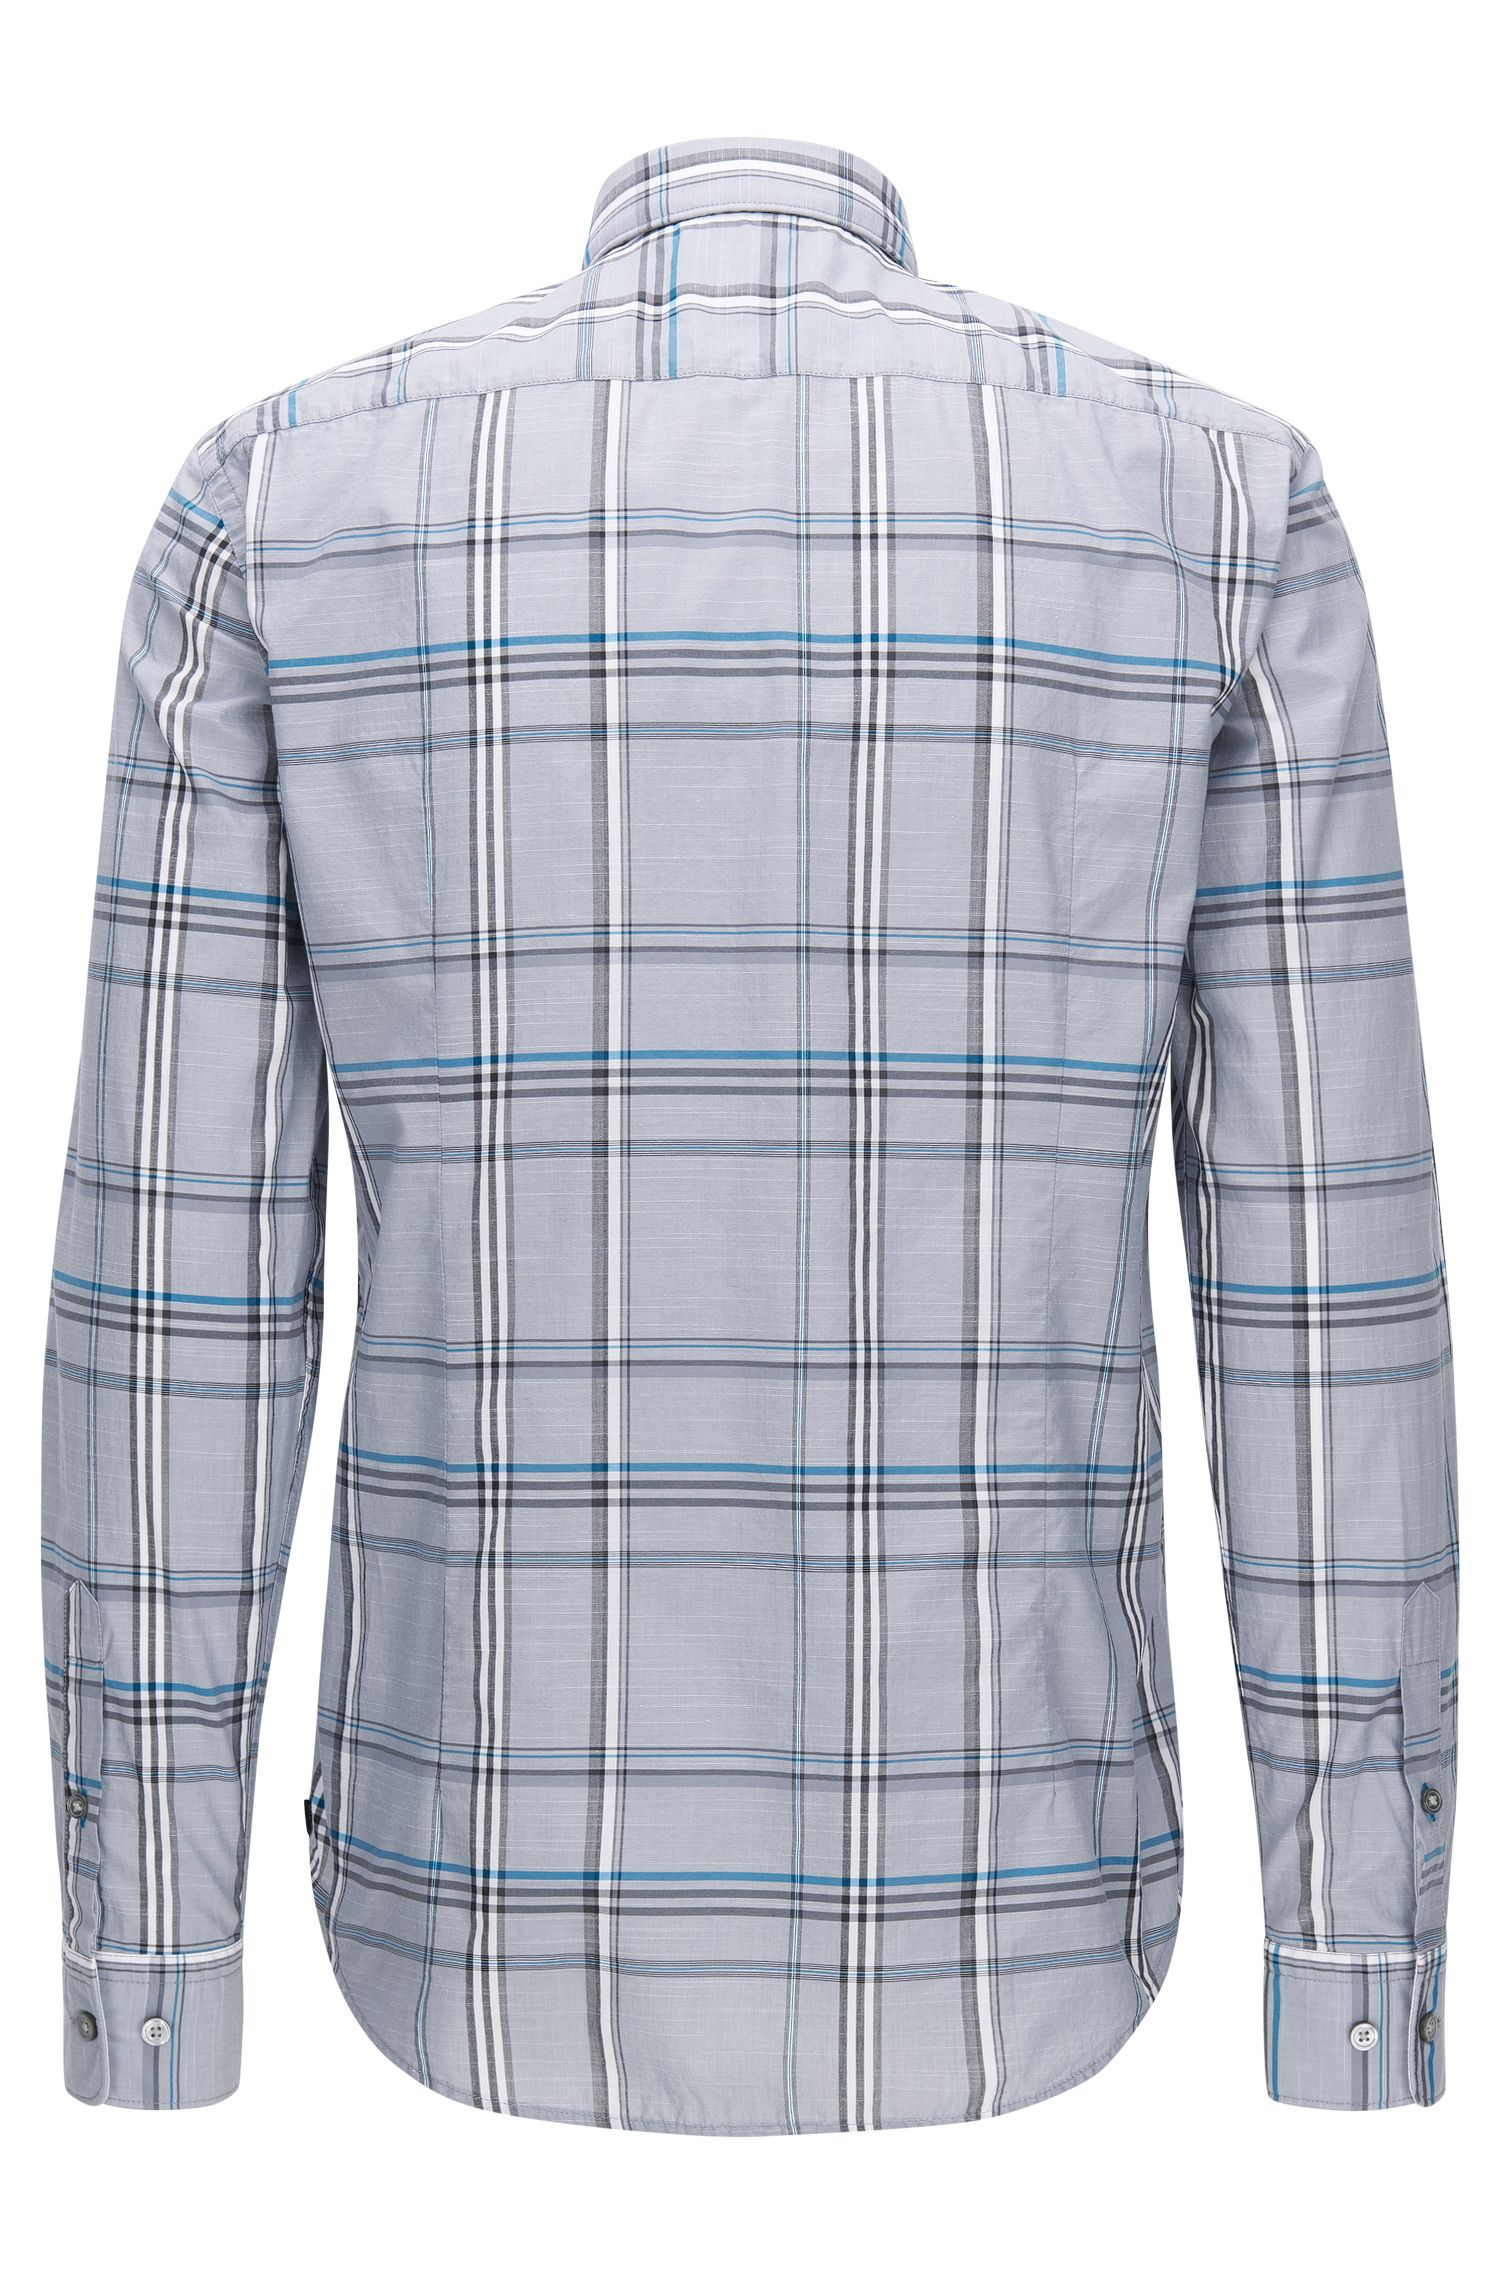 Plaid Cotton Button Down Shirt, Slim Fit | Ronni